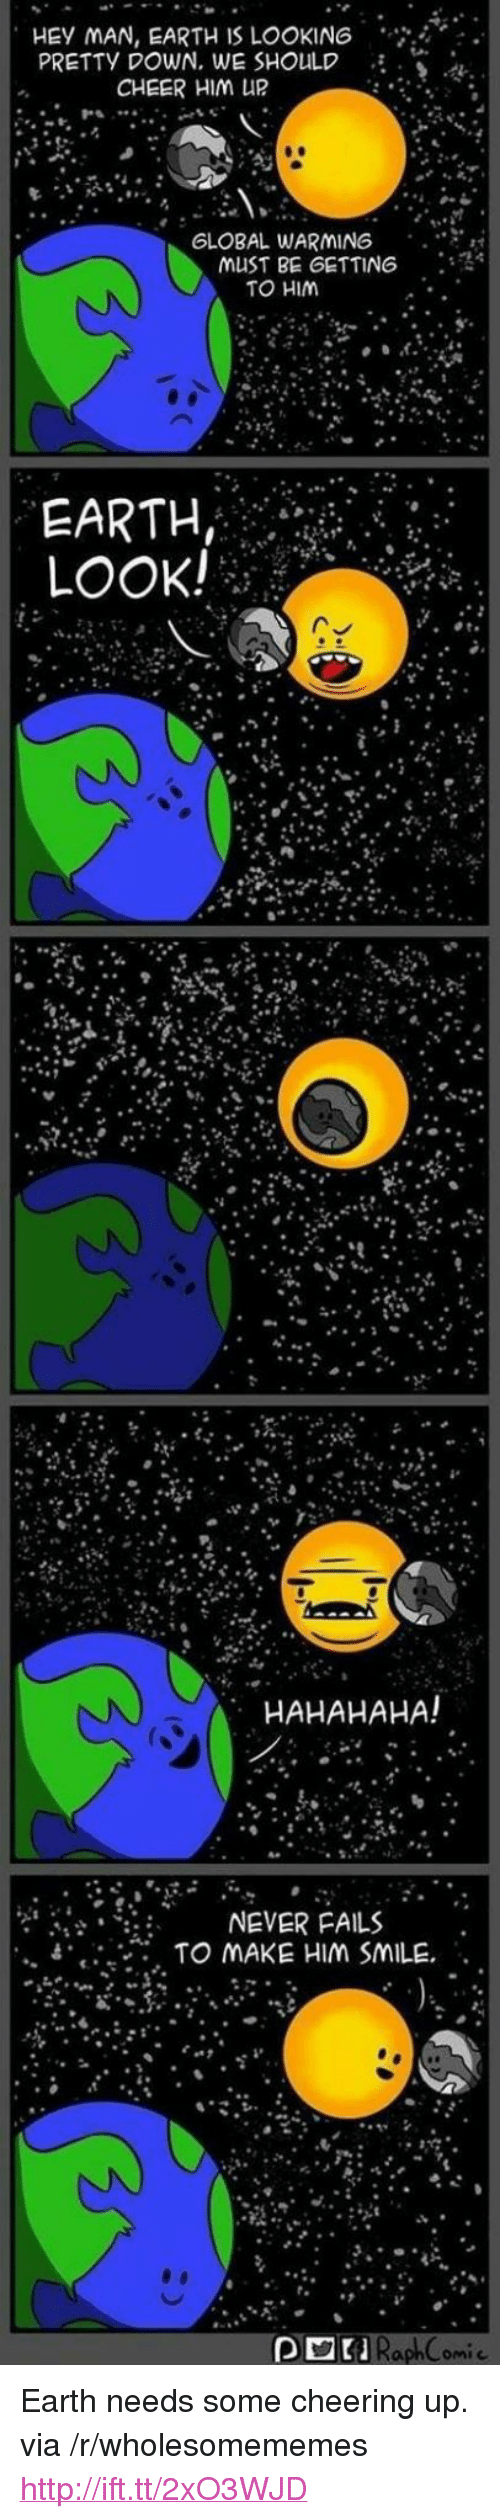 """Cheering Up: HEY MAN, EARTH IS LOOKIN6  PRETTY DOWN. WE SHOULD  CHEER HIM UR  GLOBAL WARMING  . . ..  musT BE GETTING : 4  TO HIM  EARTH  LOOK!  HAHAHAHA!  ?"""" ?it .  휴  NEVER FAILS  , TO MAKE HIM SMILE"""" .  """"  RaphComic <p>Earth needs some cheering up. via /r/wholesomememes <a href=""""http://ift.tt/2xO3WJD"""">http://ift.tt/2xO3WJD</a></p>"""